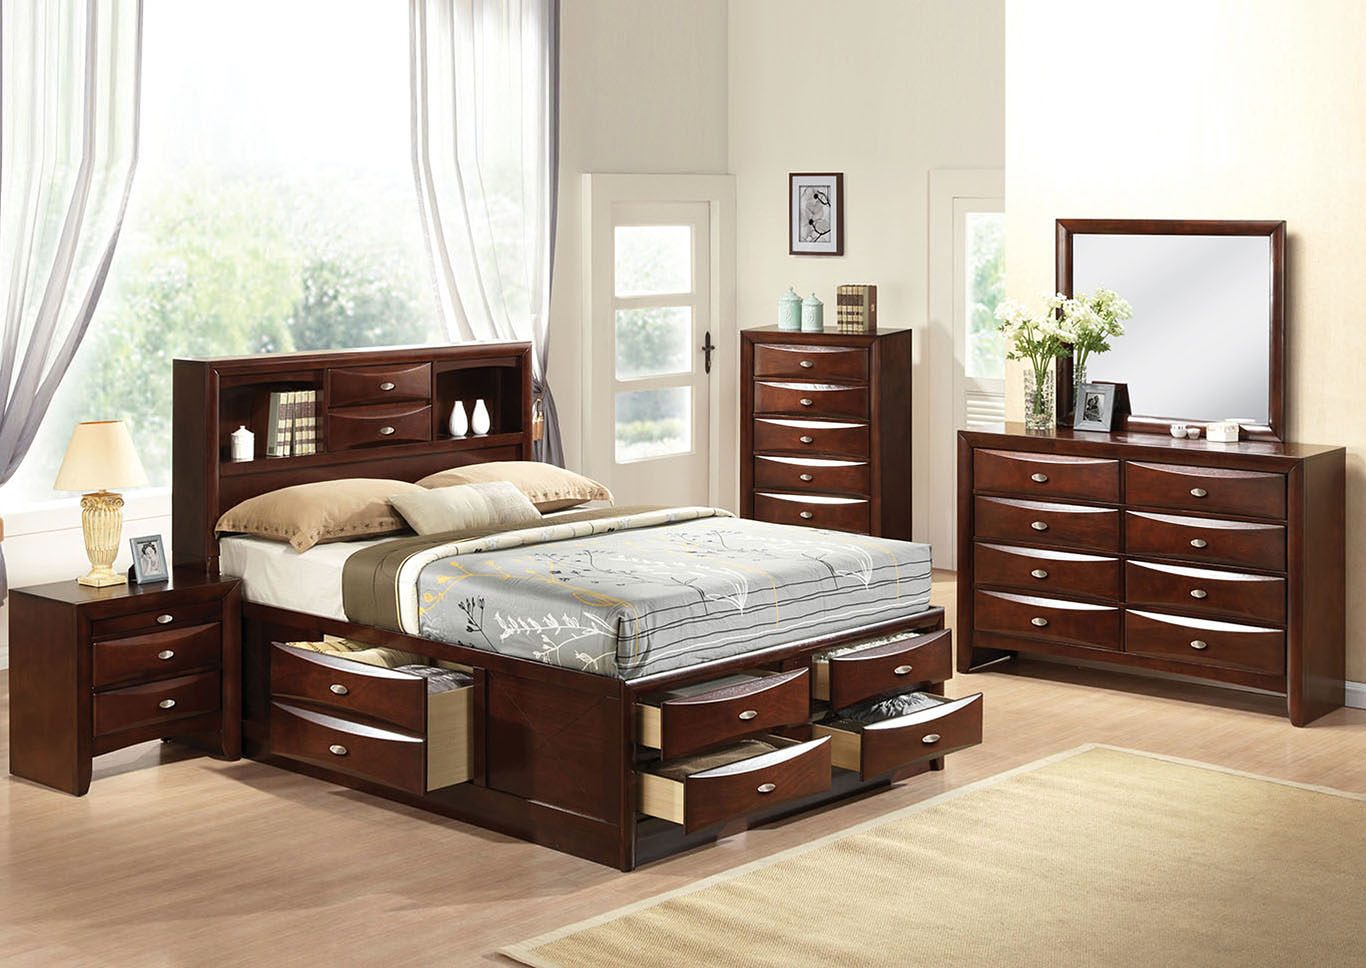 Ireland Espresso Full Storage Bed w/Dresser and Mirror,Acme